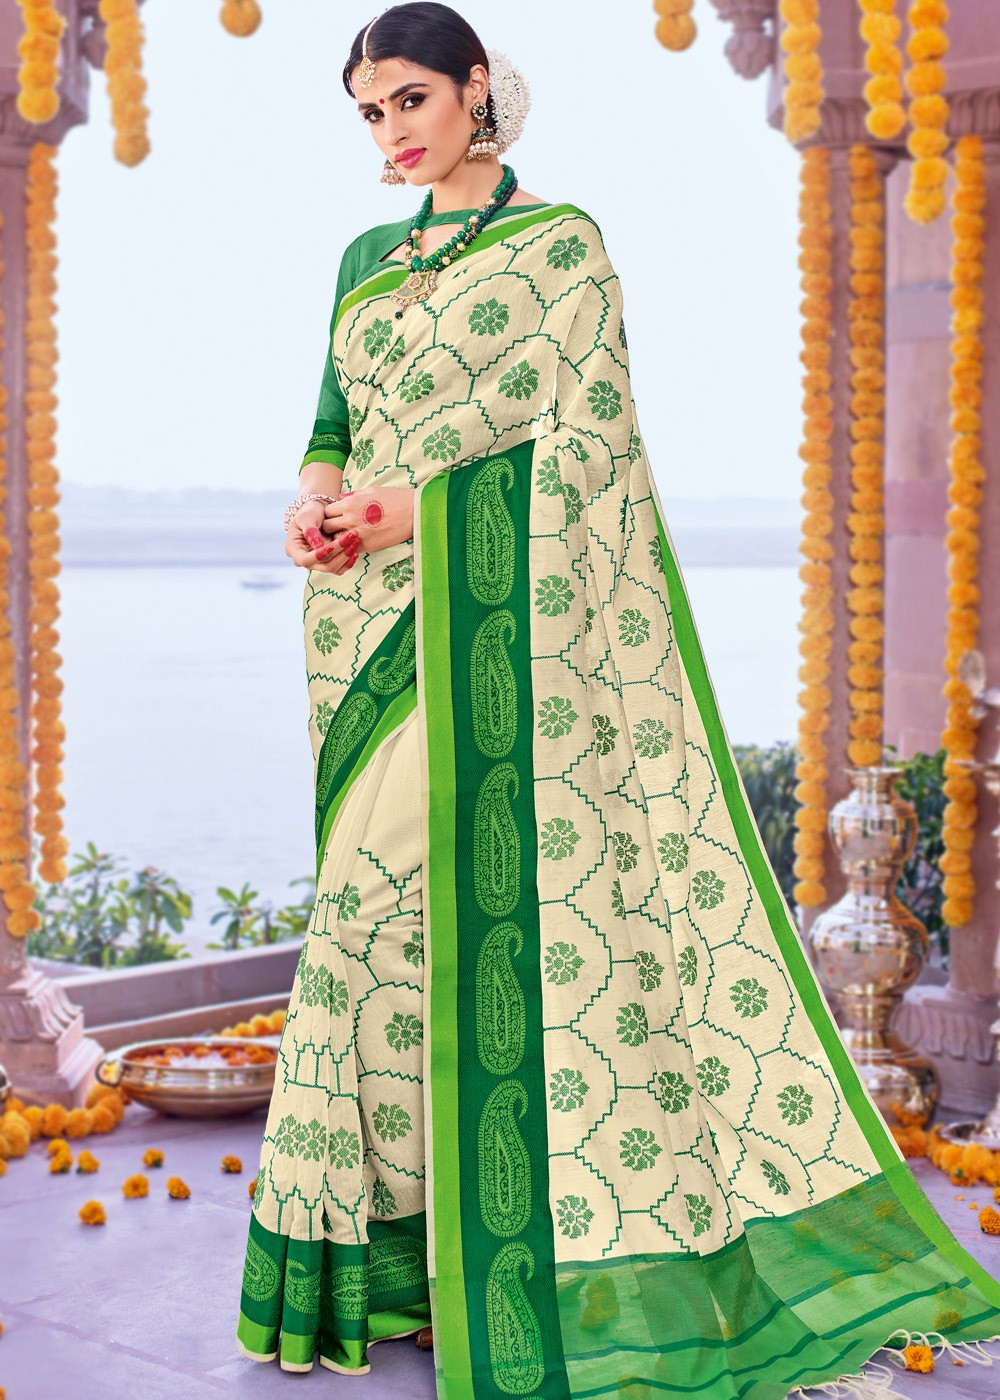 Awesome Chanderi Sarees Online Shopping at Panash India | free Classified | Free Advertising | free classified ads